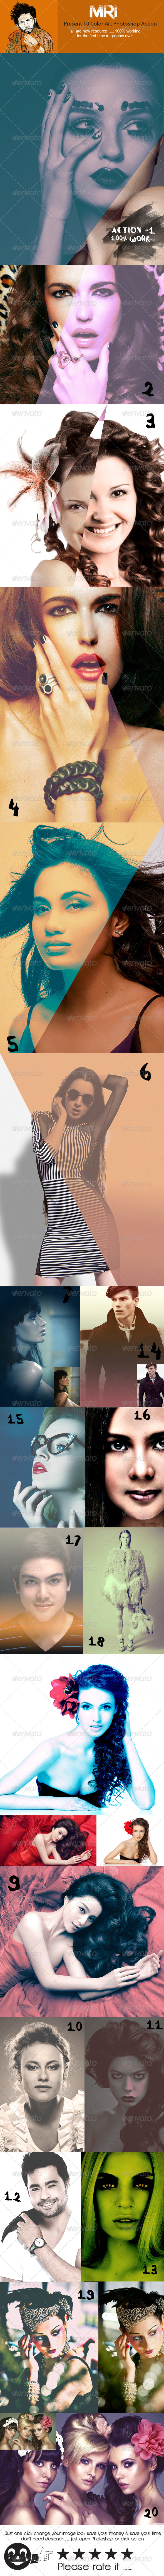 GraphicRiver Fashion Actions 7816803